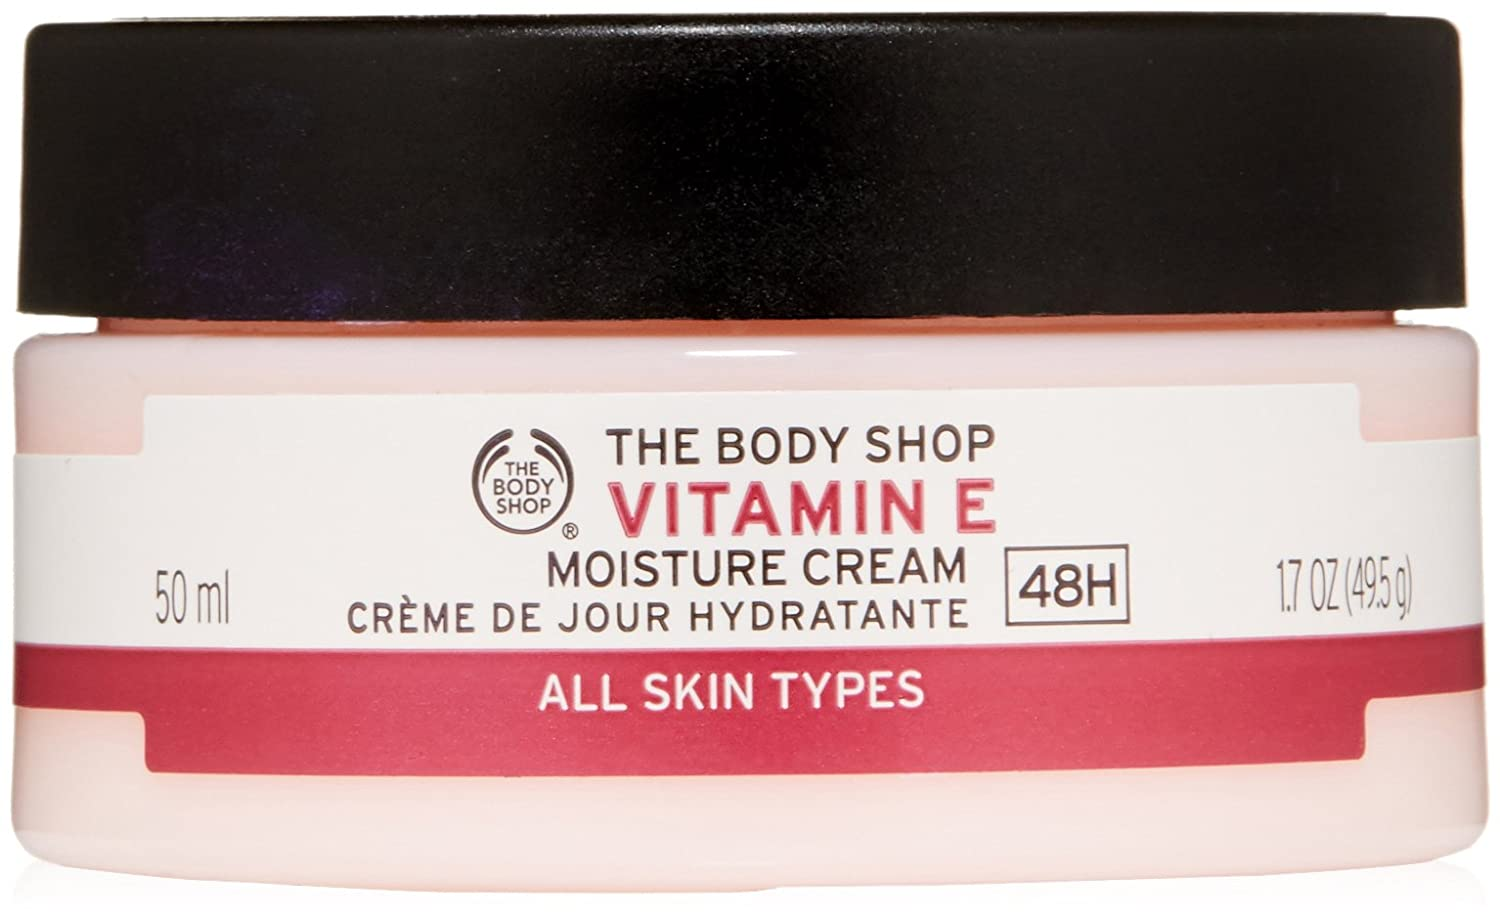 The Body Shop Vitamin E Moisture Cream - 50ml 1060709